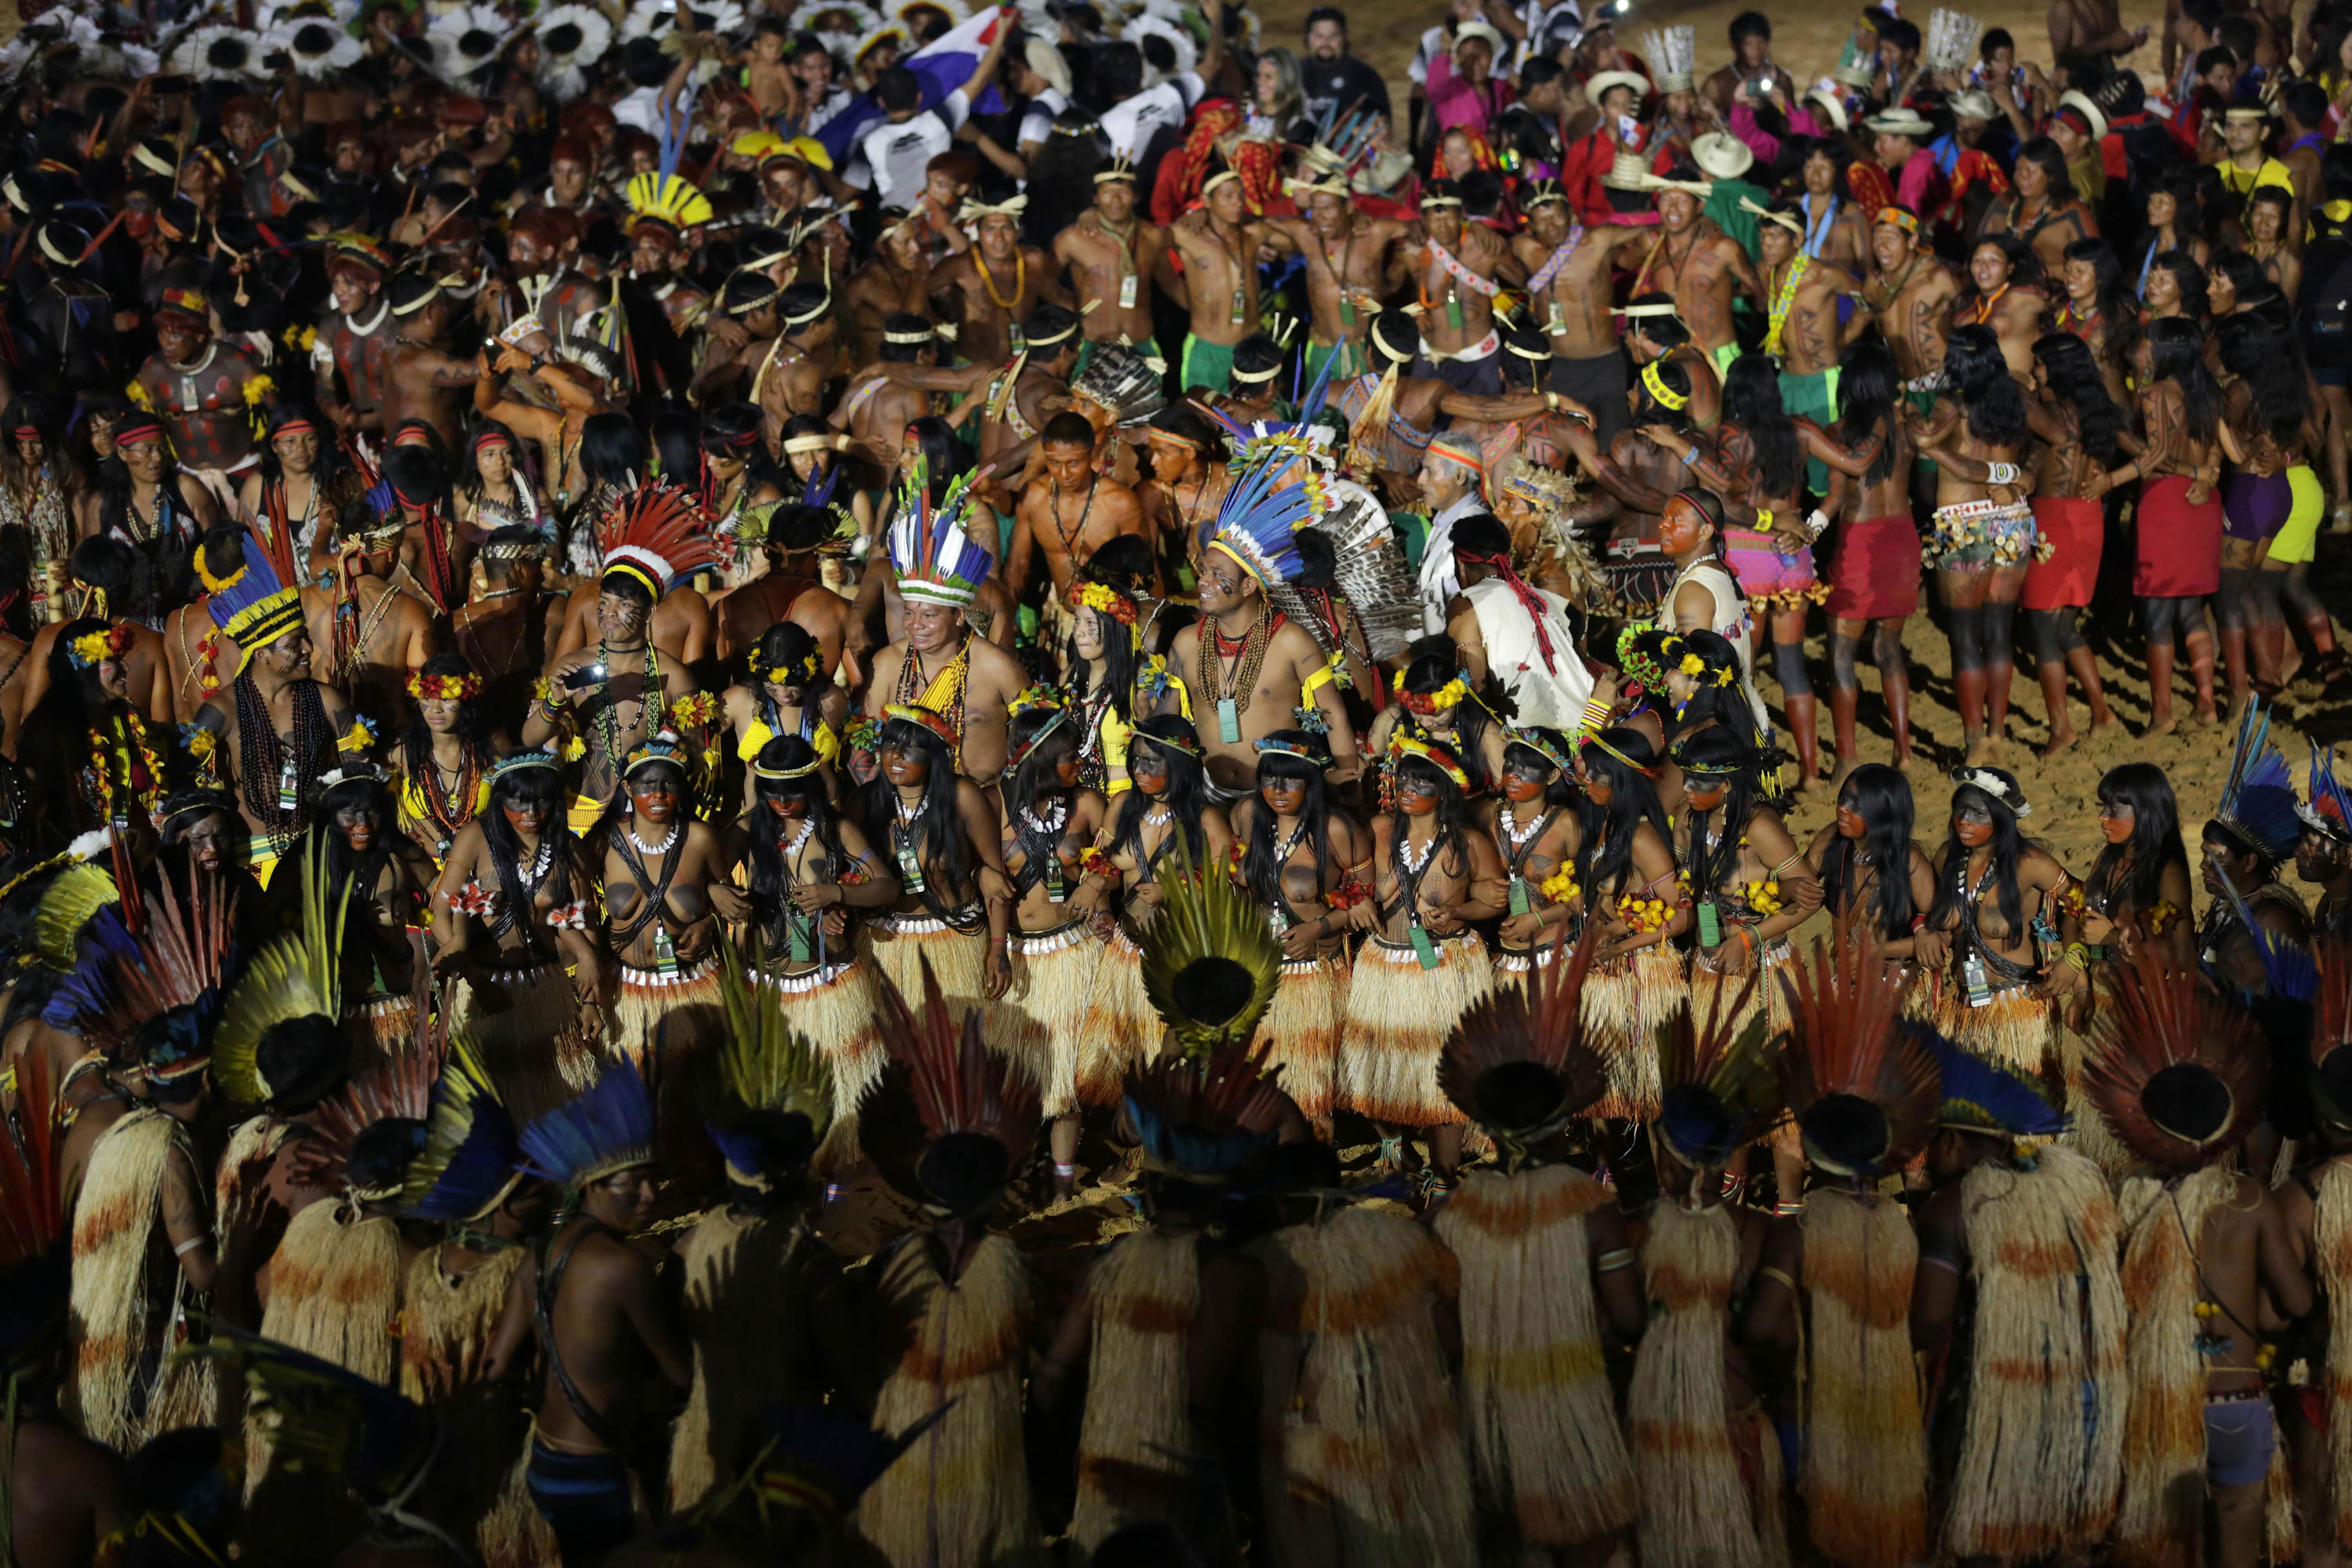 Indians from various ethnic groups and countries dance during the opening ceremony of the World Indigenous Games in Palmas, Brazil. [Eraldo Peres/AP]